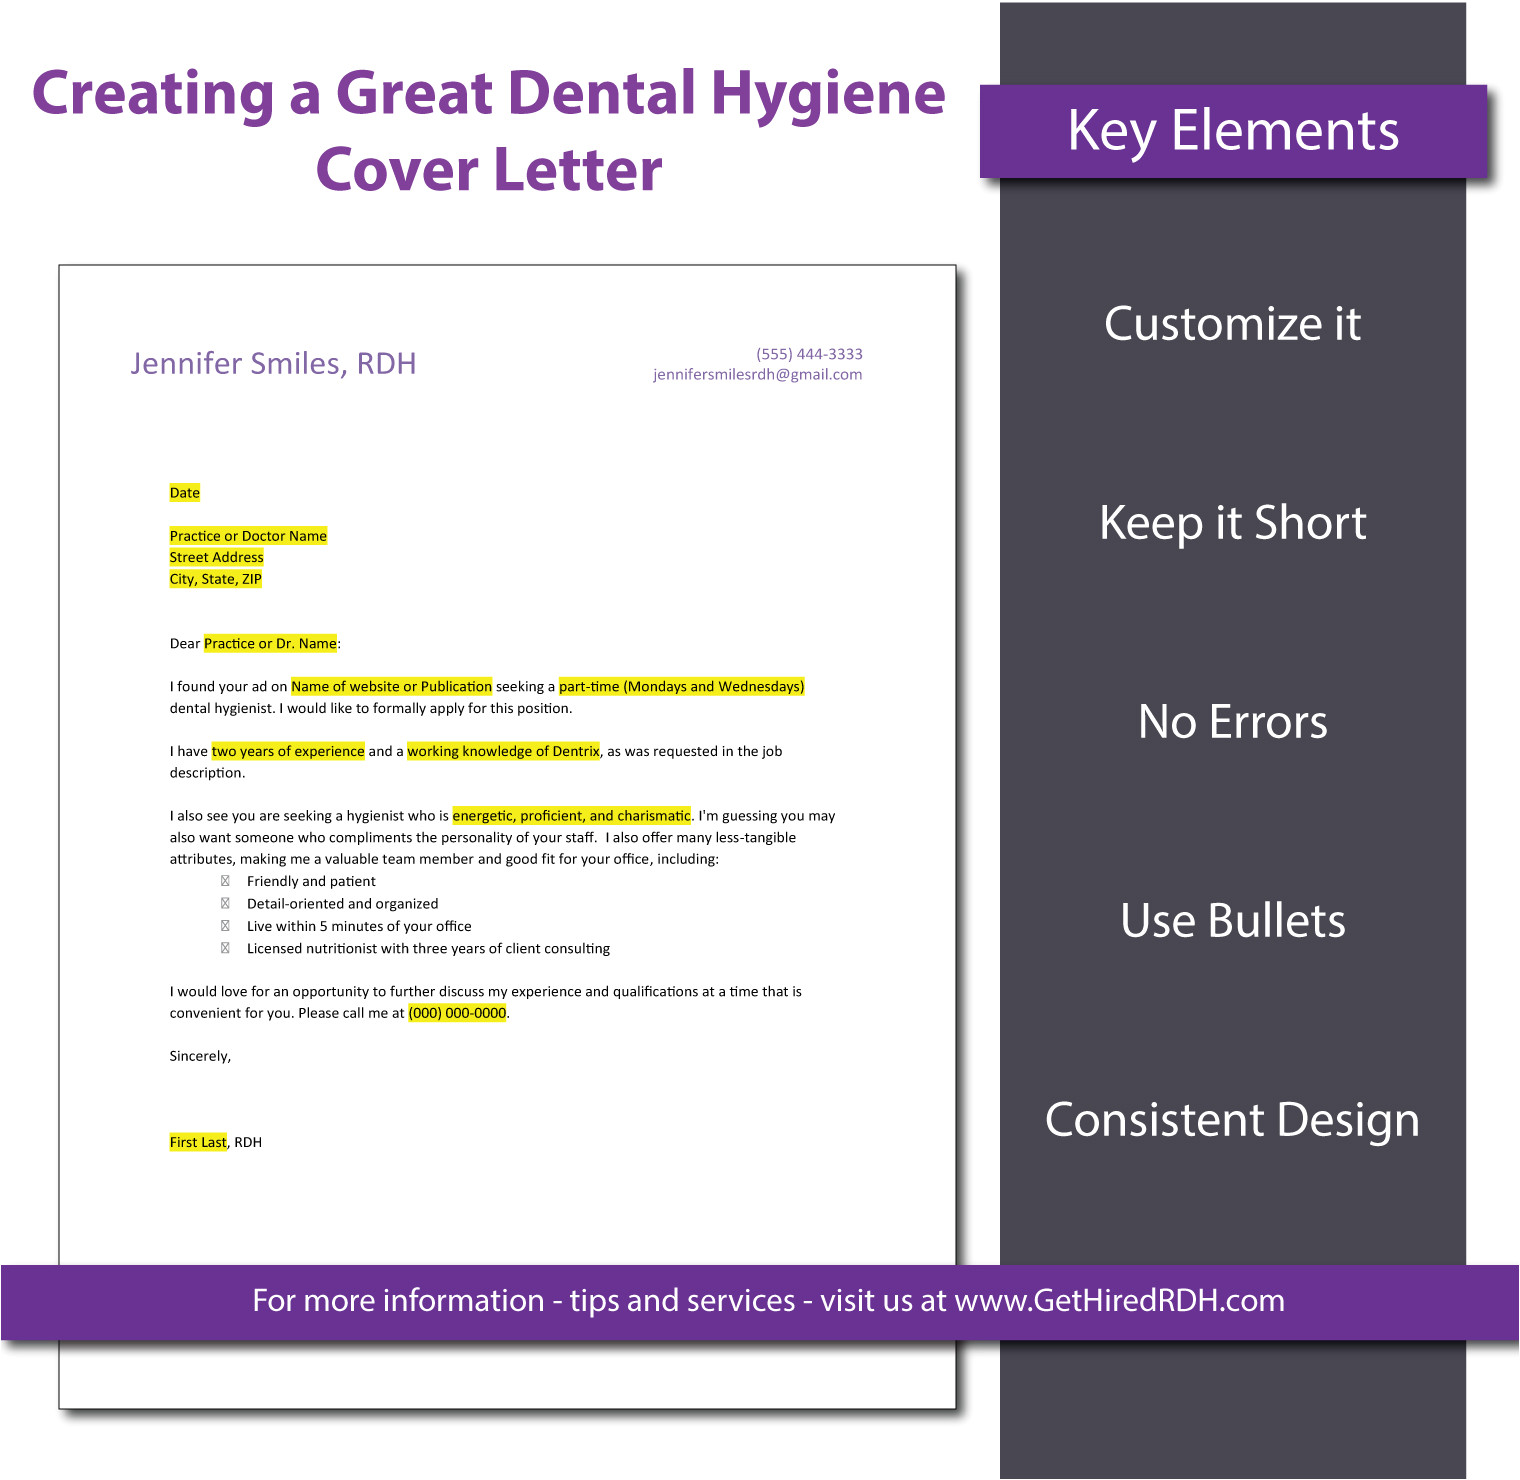 5 tips for creating a dental hygiene cover letter that gets you noticed